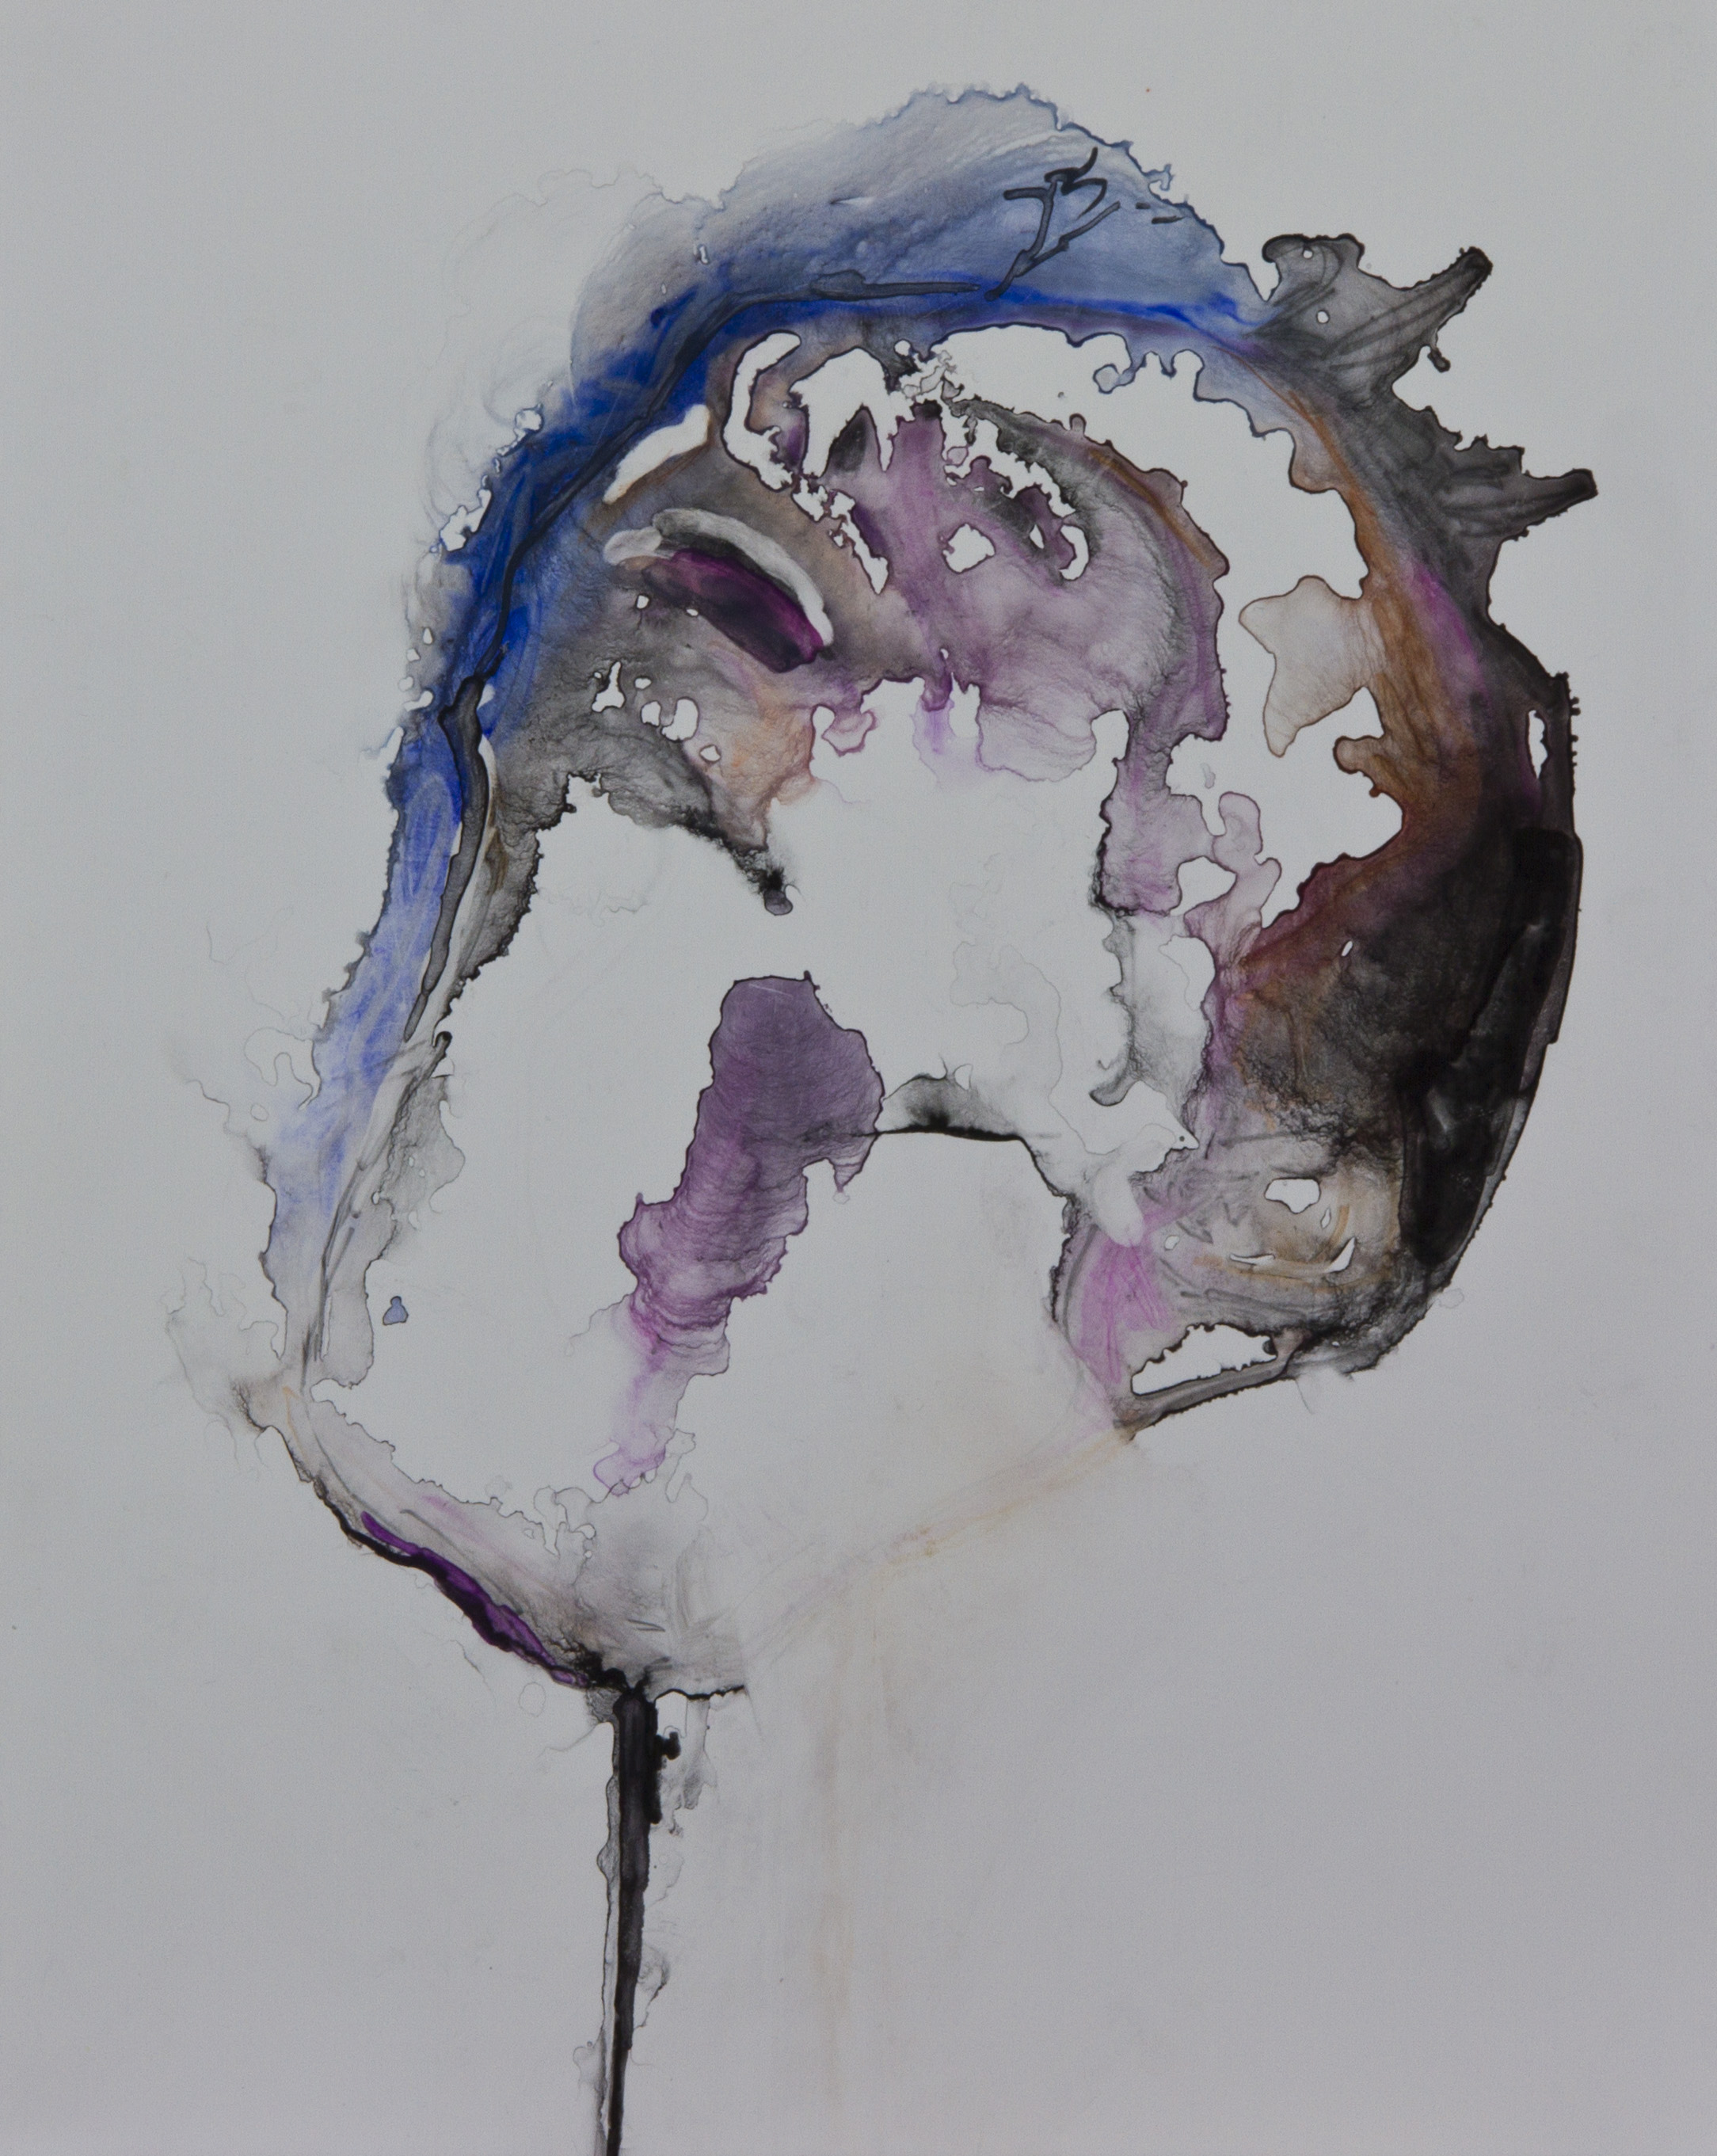 Specimen 1, 2011, watercolor on polypropylene, 11x14 inches